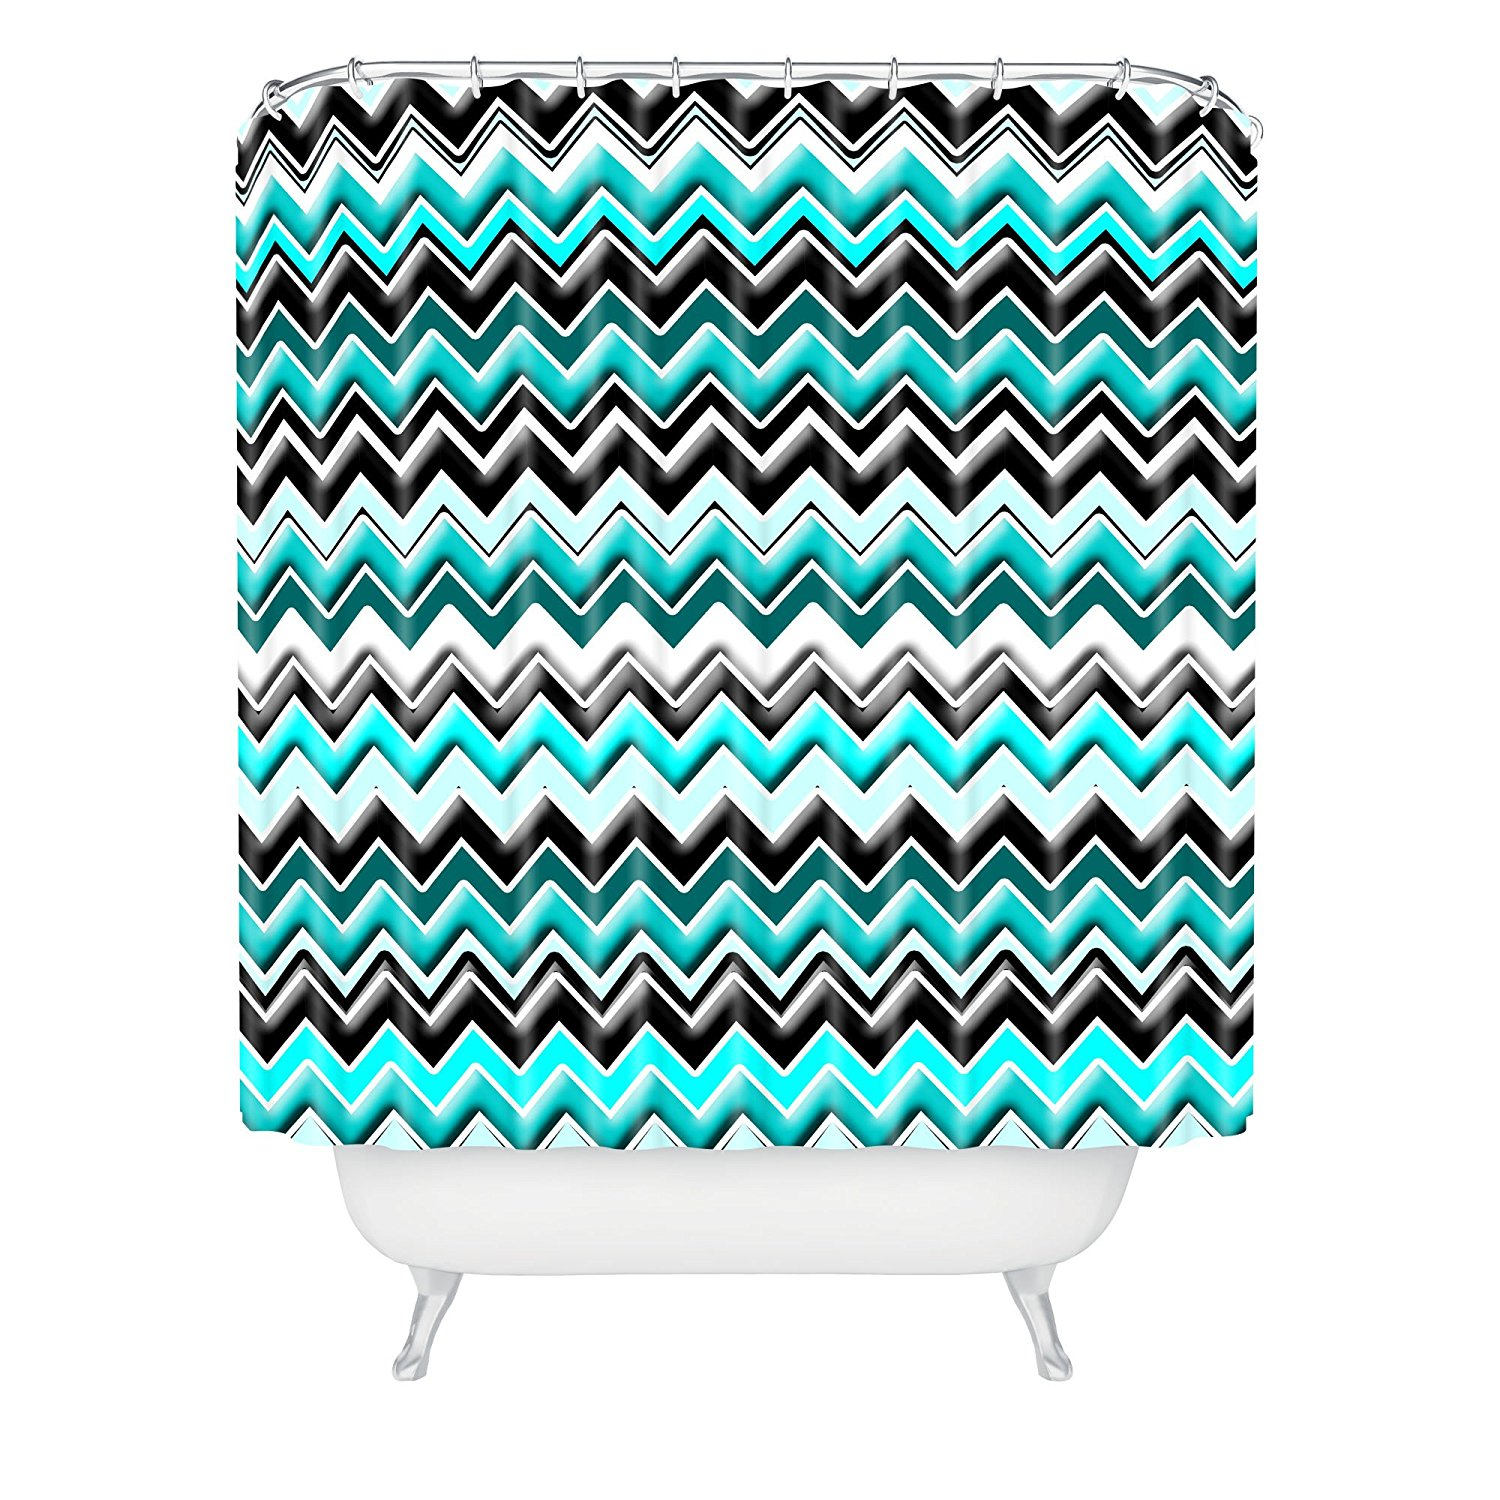 Teal and black shower curtain - Madart Inc Turquoise Black White Chevron Shower Curtain China Mainland